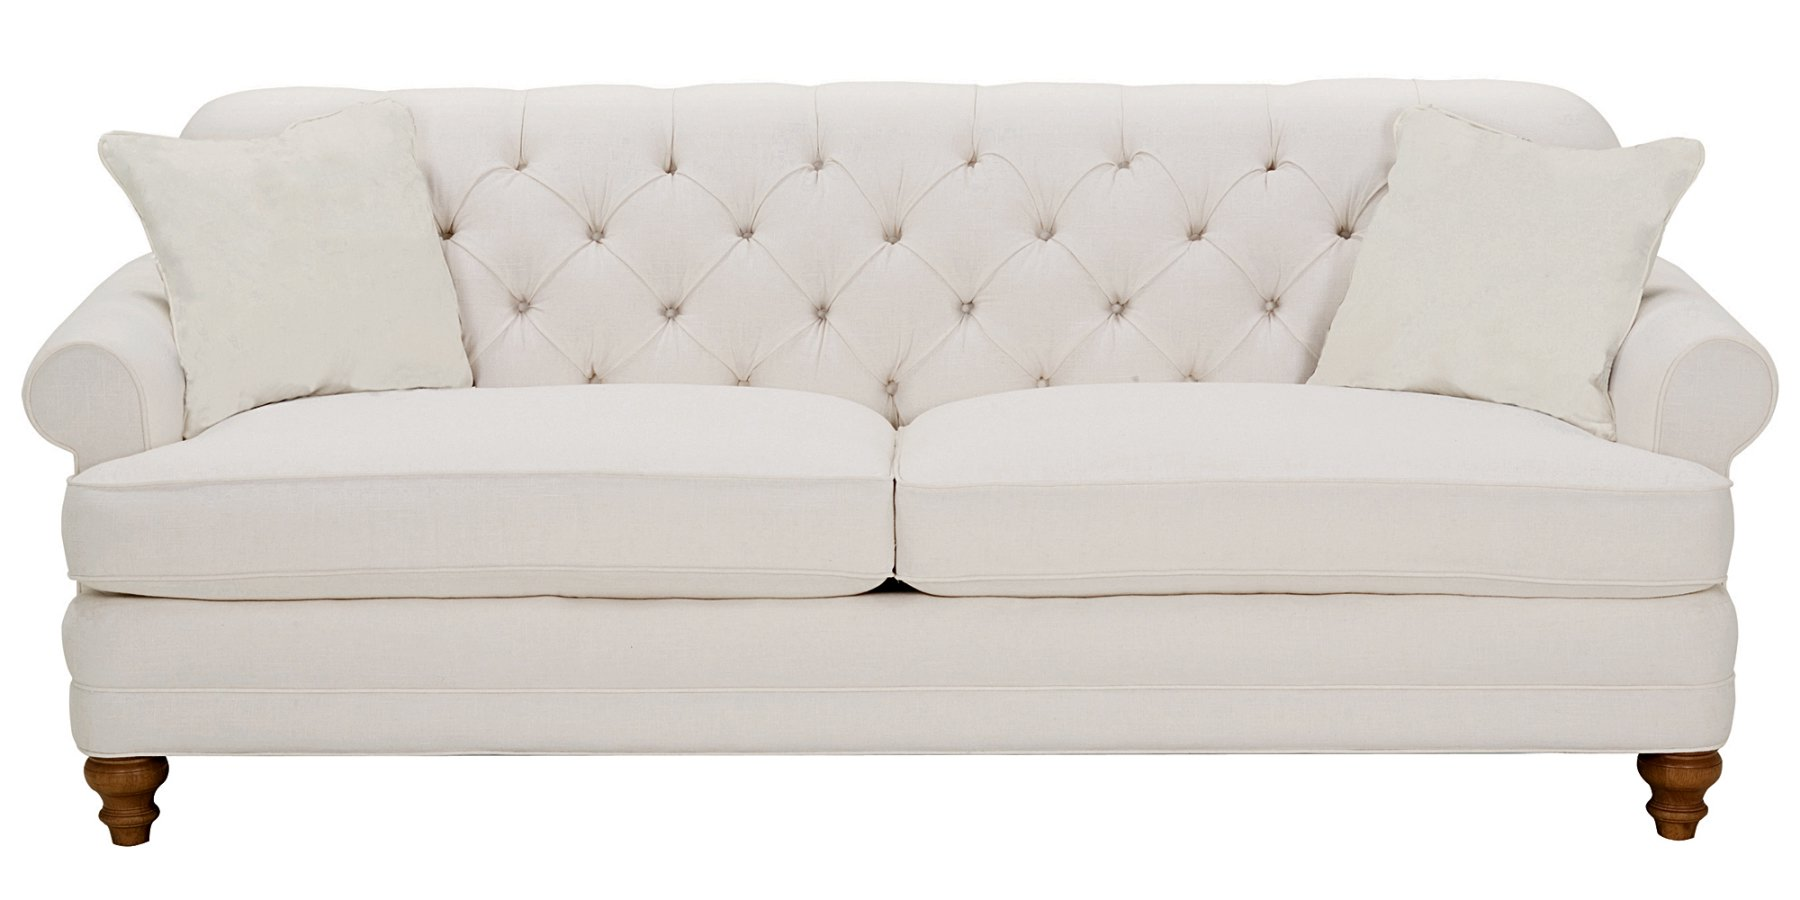 Large Sectional Sofas Recliners